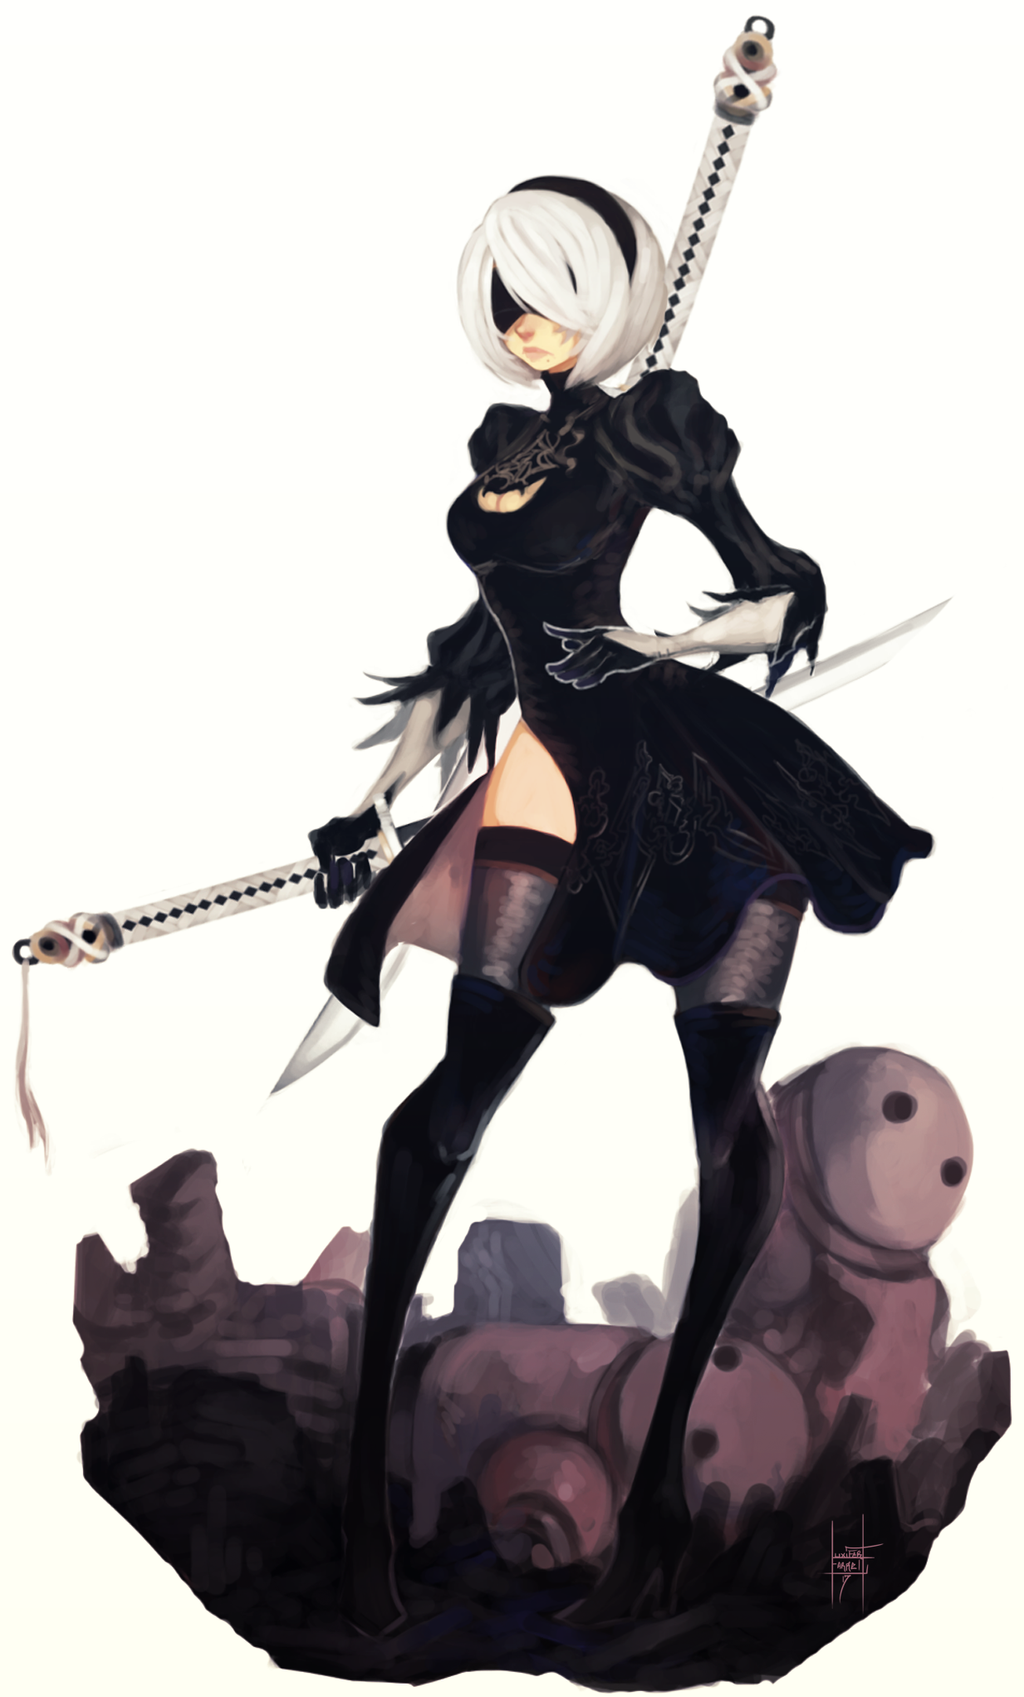 Type B Anime Characters : Yorha no type b by xluxifer on deviantart